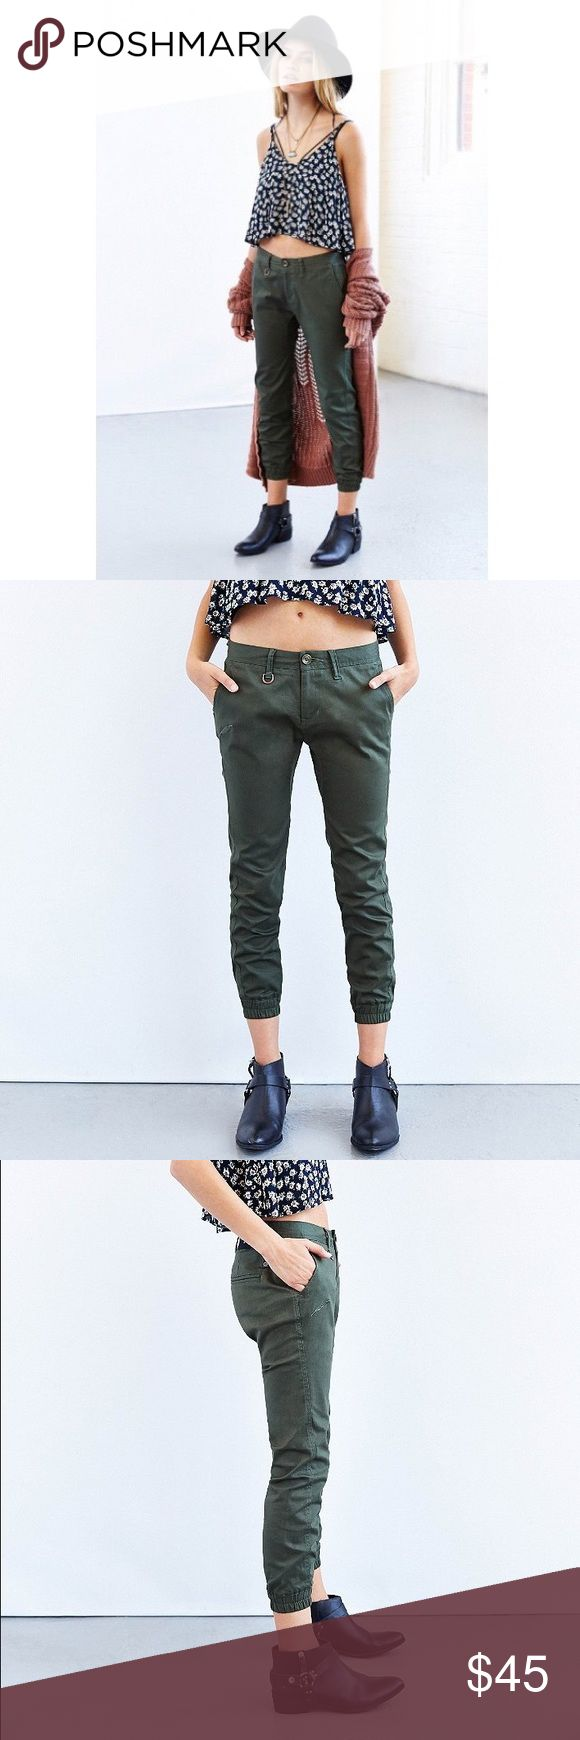 Publish Army Green Hanna Joggers In perfect condition only worn 2-3 times, these Publish Joggers are super hip and comfy. They have awesome utility in the design with pockets, draw string waist, and are cropped at the ankle. No trades or pp. Offers, bundles, and negotiations are welcome! Publish Pants Track Pants & Joggers